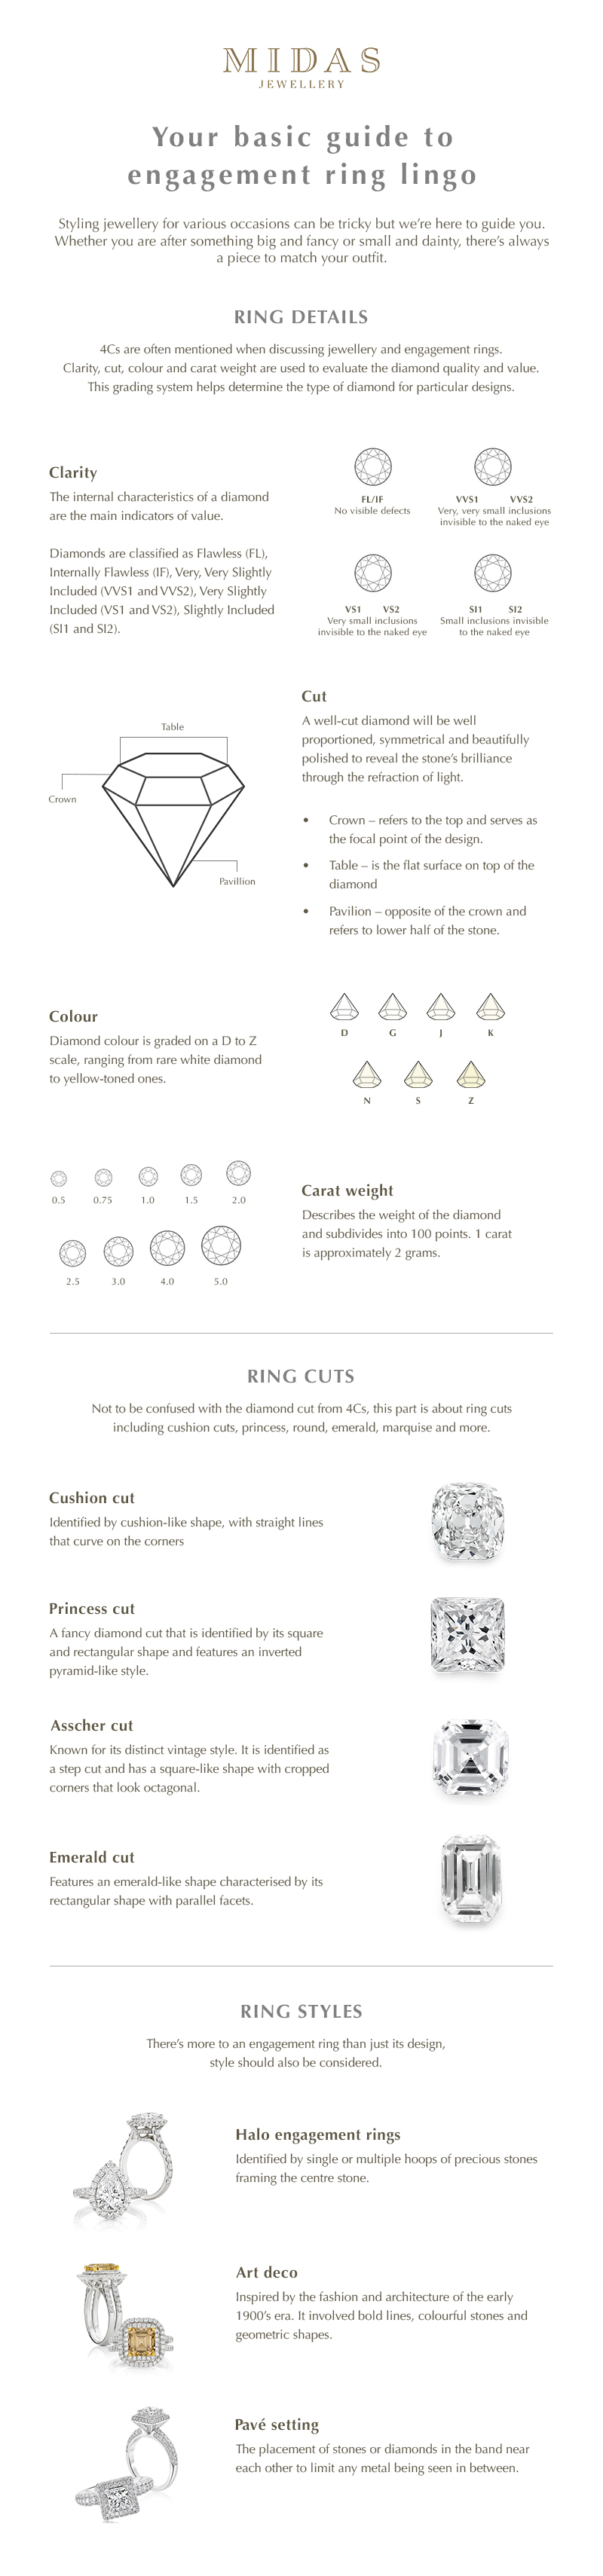 Engagement ring lingo infographic